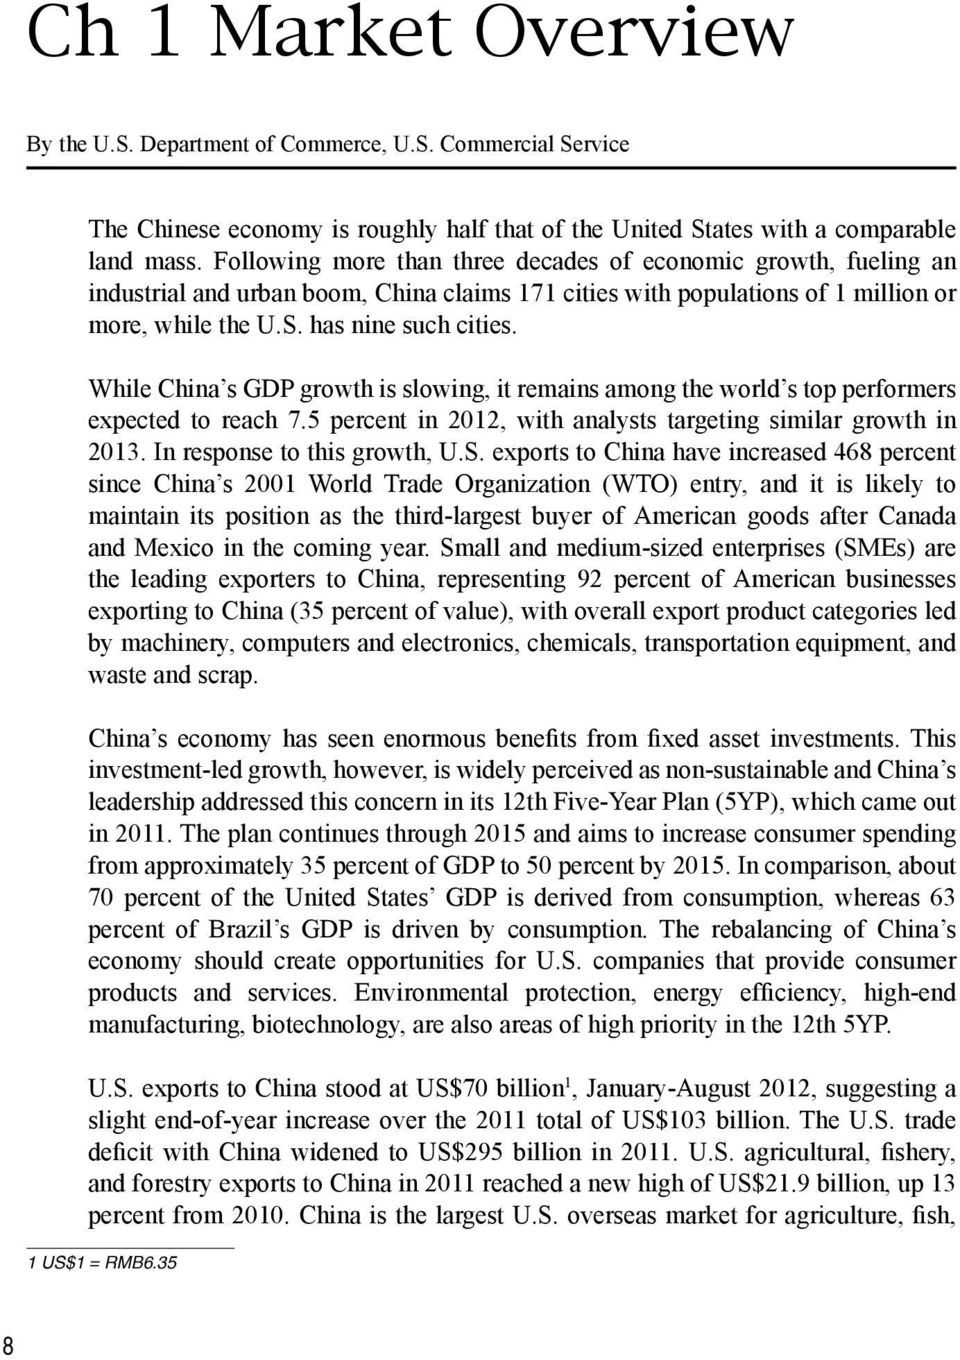 While China s GDP growth is slowing, it remains among the world s top performers expected to reach 7.5 percent in 2012, with analysts targeting similar growth in 2013. In response to this growth, U.S.